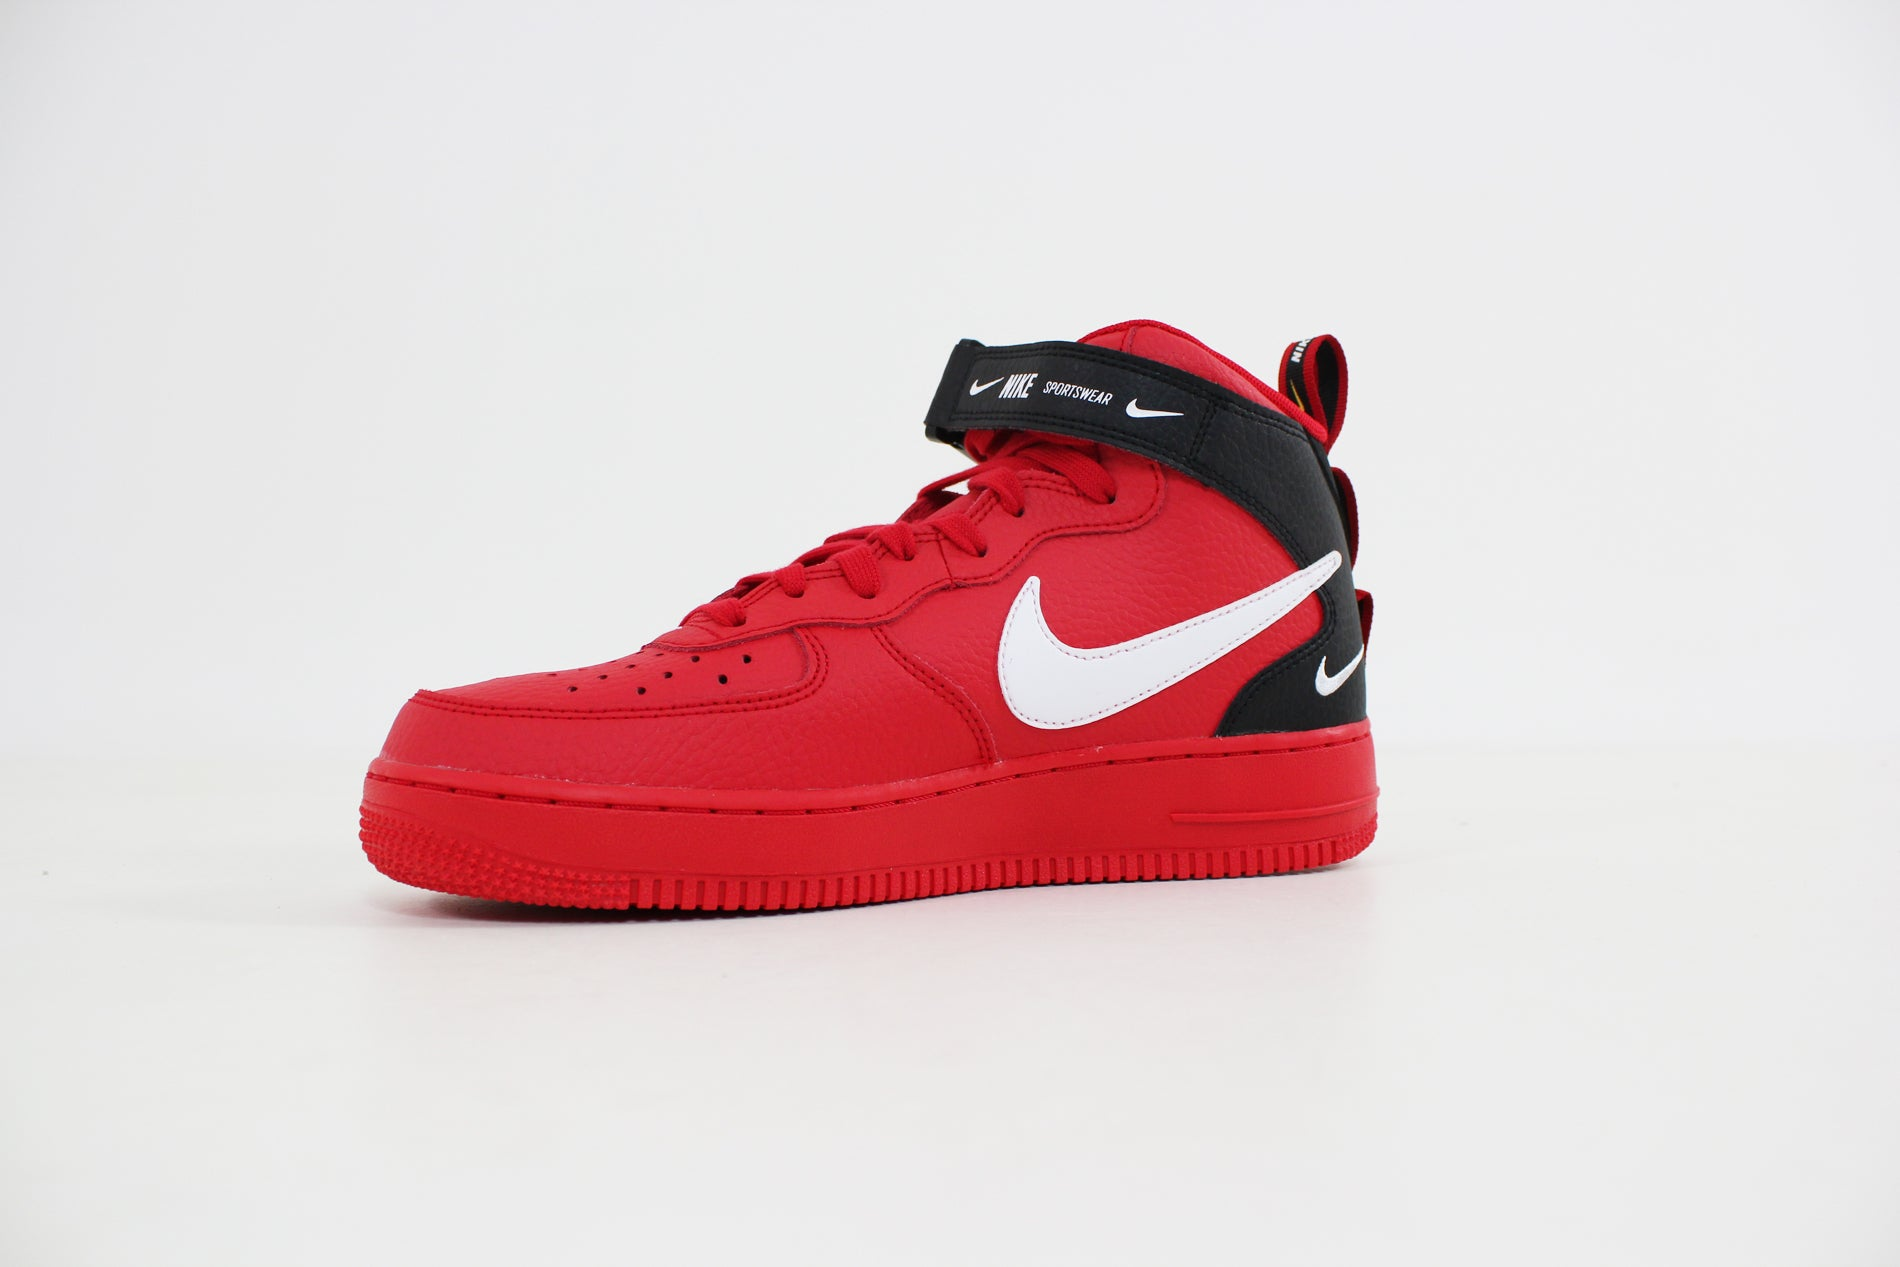 Nike - Air Force 1 Mid 07 LV8 (Uinversity Red/ White Black Tour Yellow) 804609-605